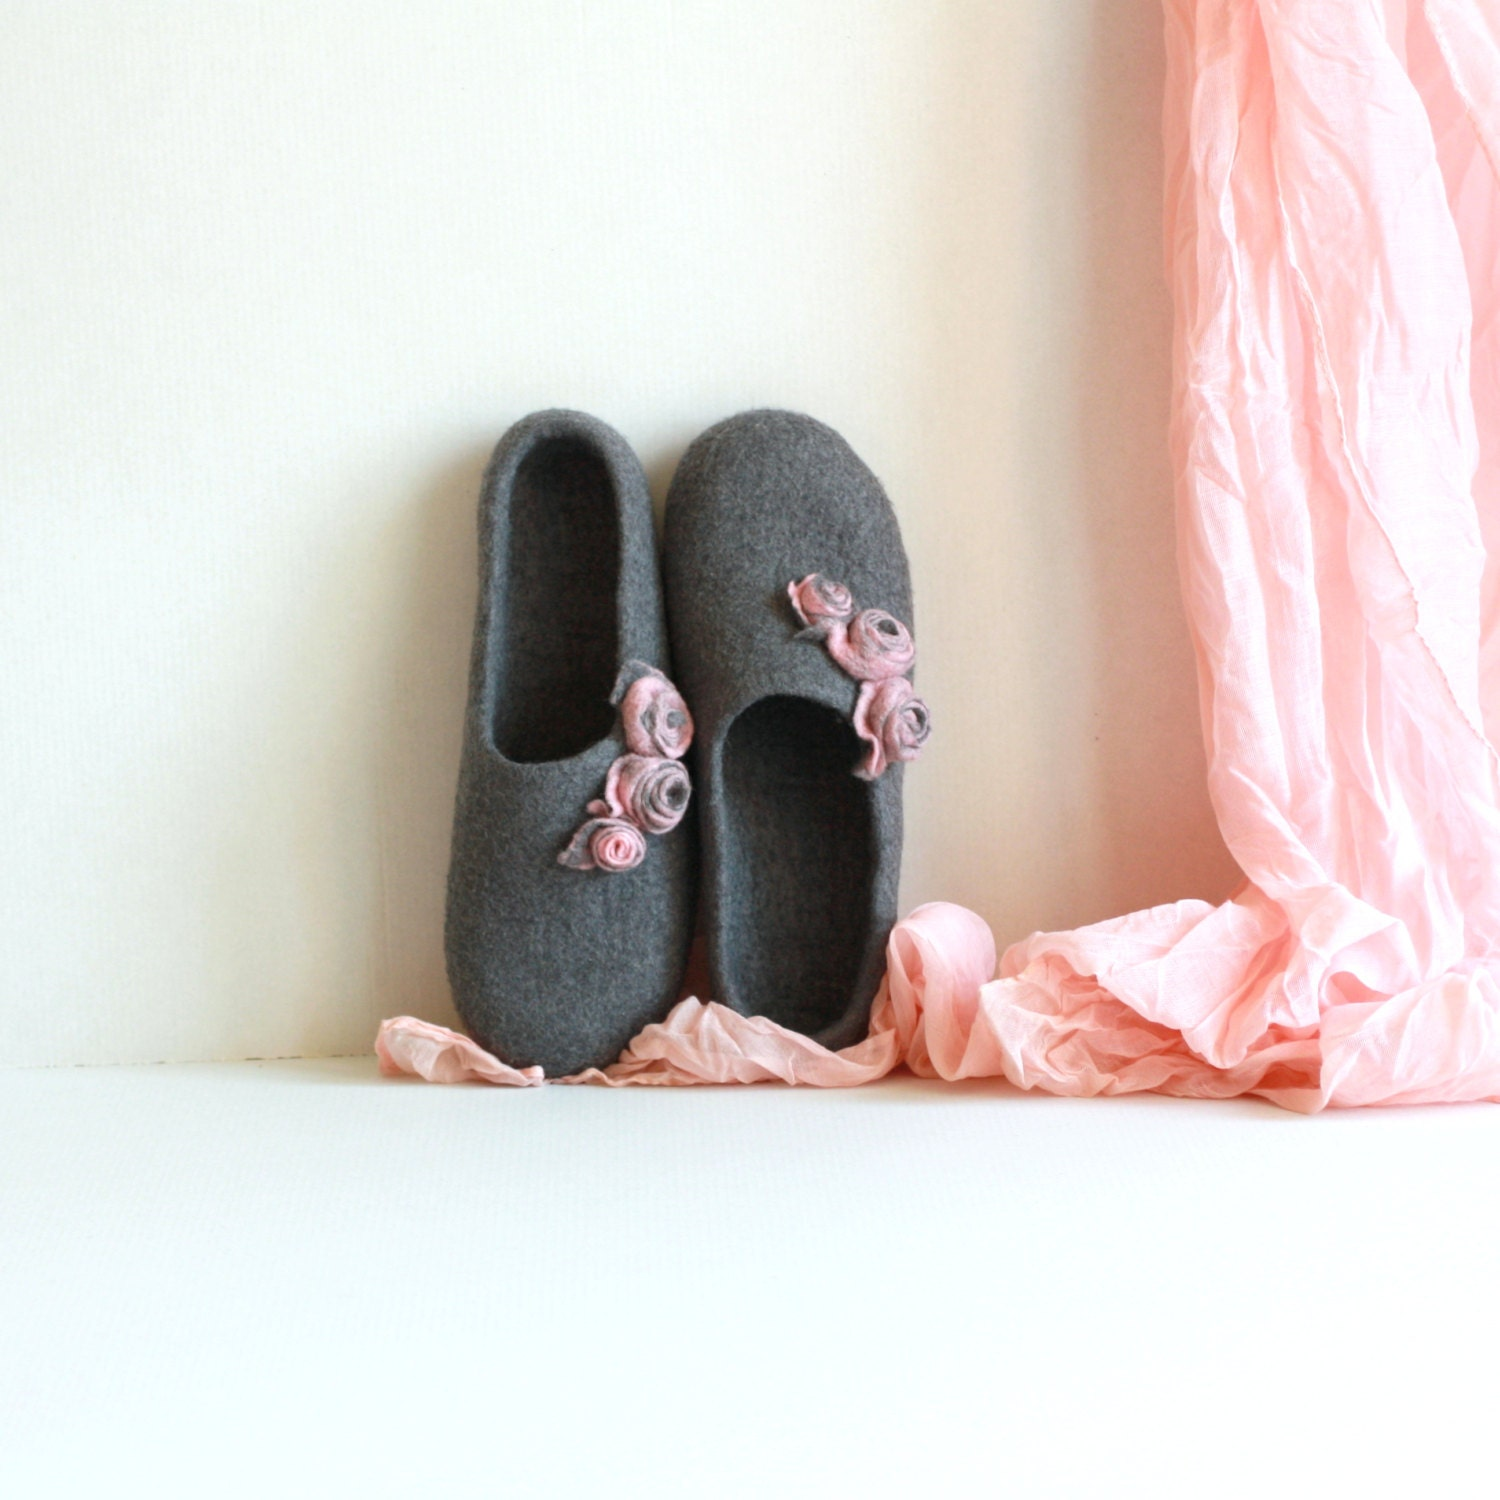 Women house shoes - felted wool slippers - Mothers day gift - grey with pink roses - AgnesFelt